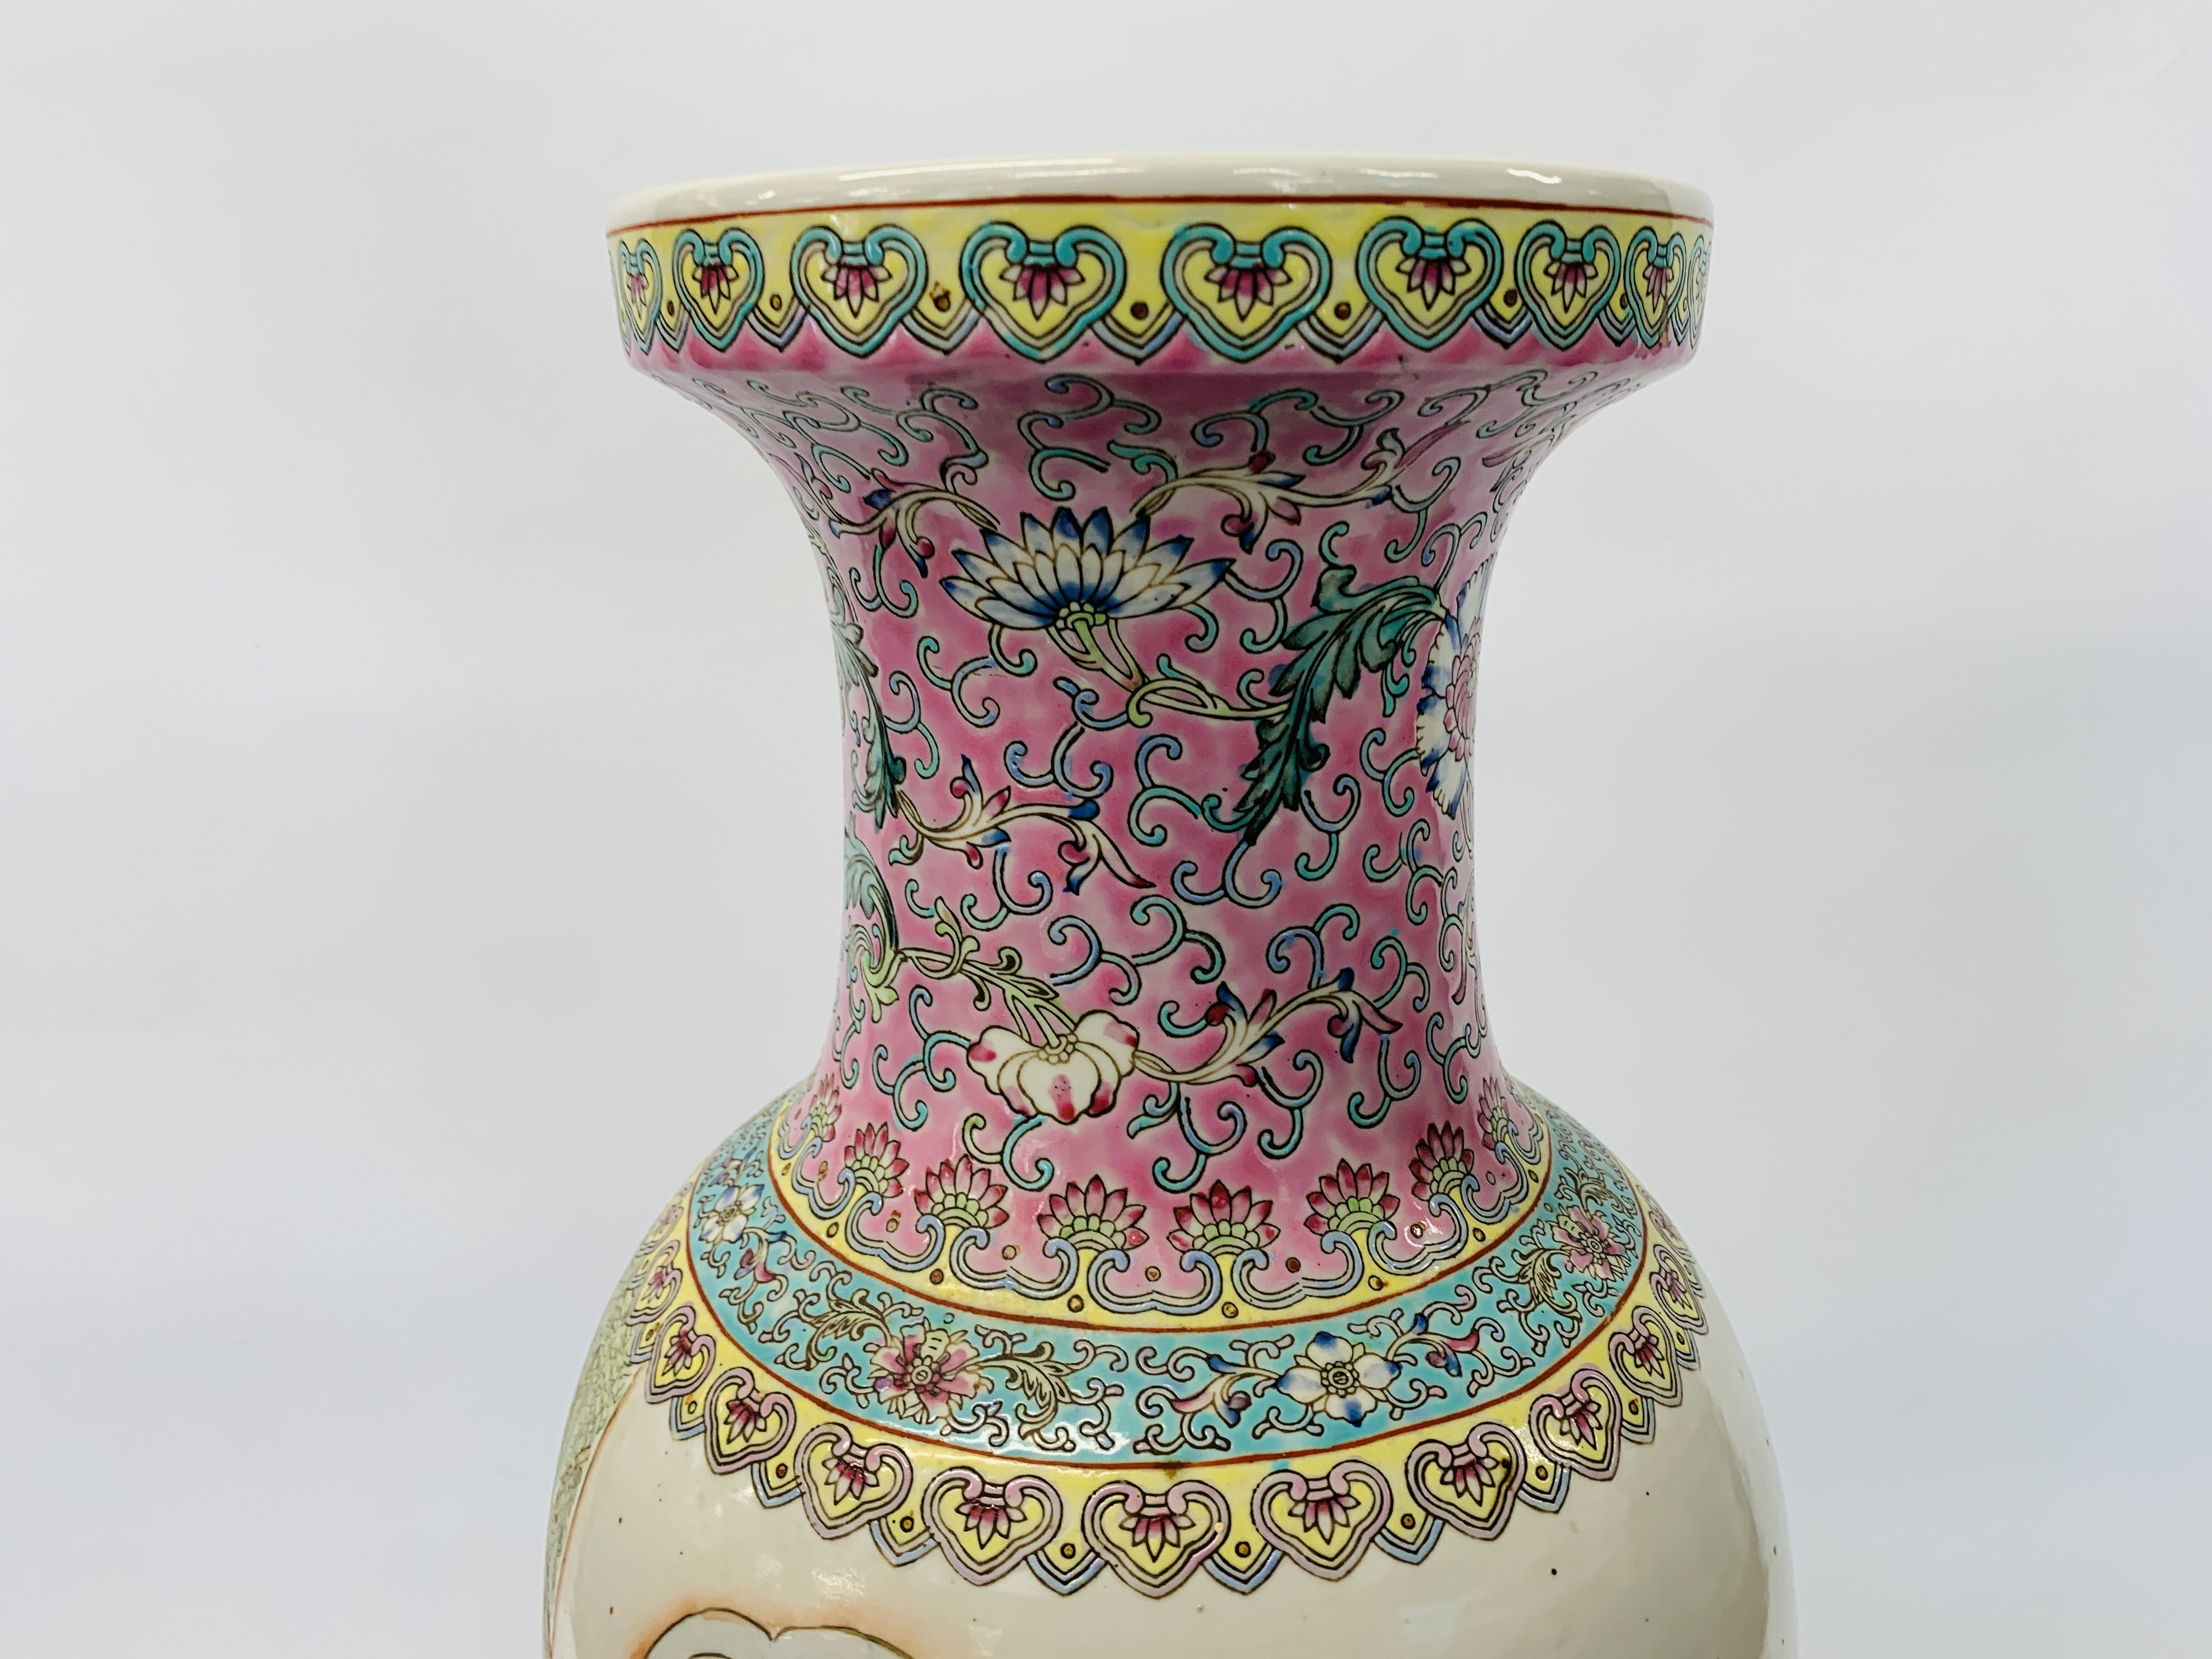 A LARGE CHINESE POLYCHROME VASE - HEIGHT 60CM. - Image 8 of 12